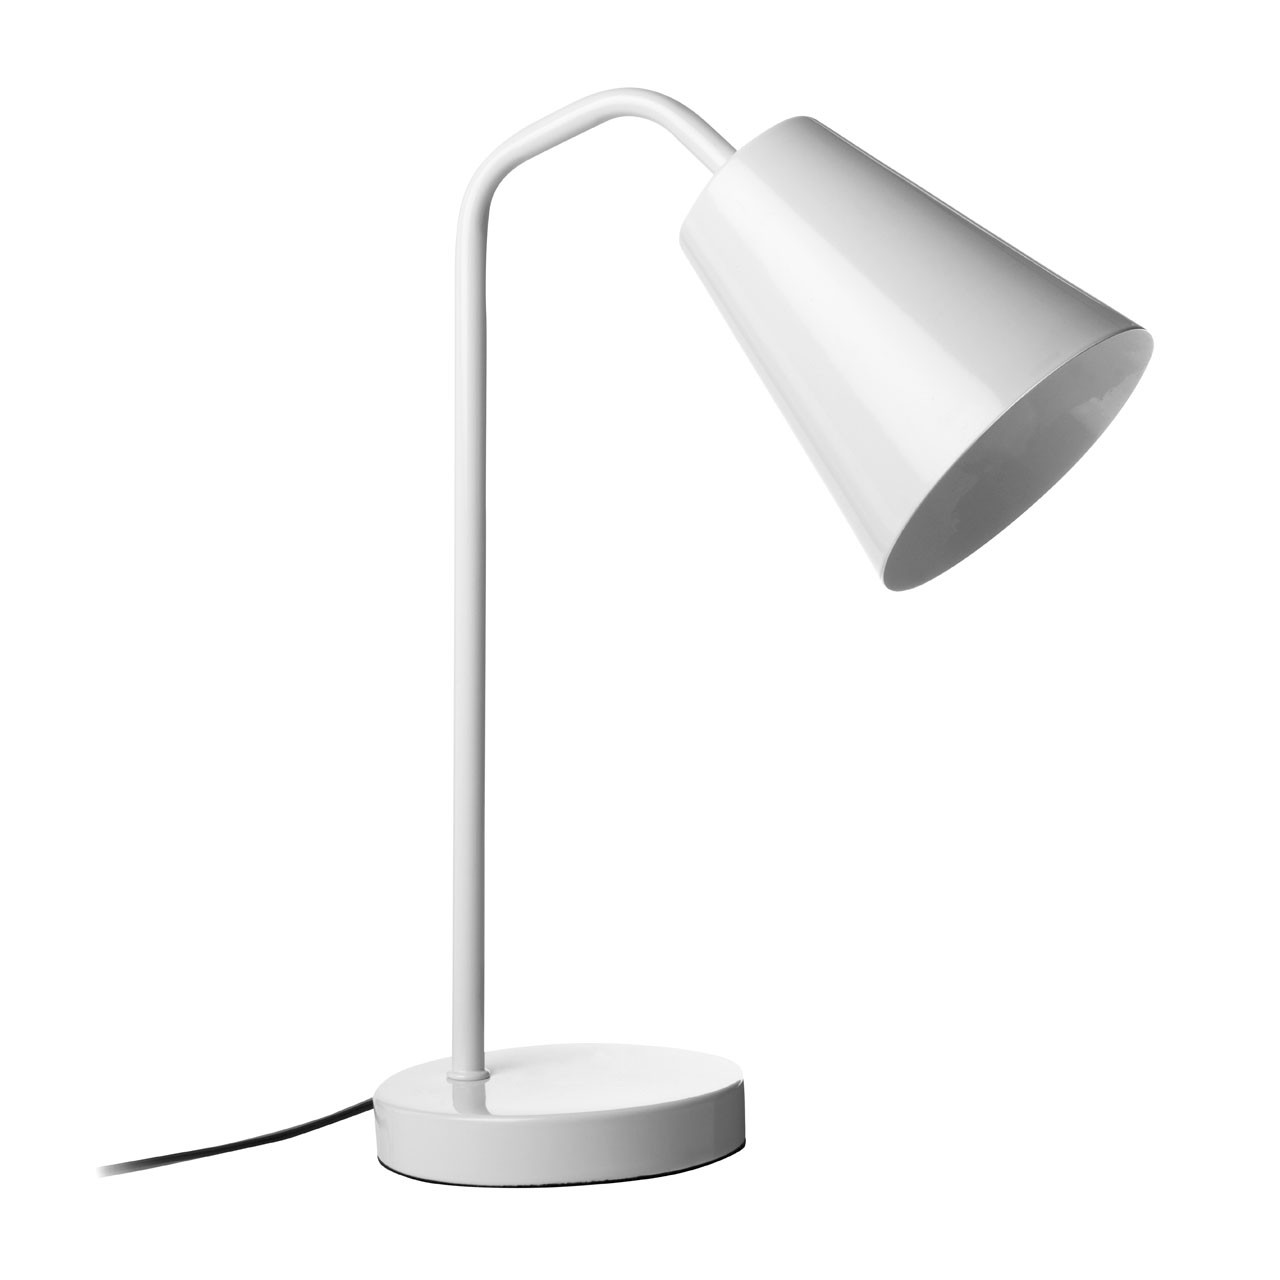 Prime Furnishing Flexible Modern Desk Lamp, Metal - White